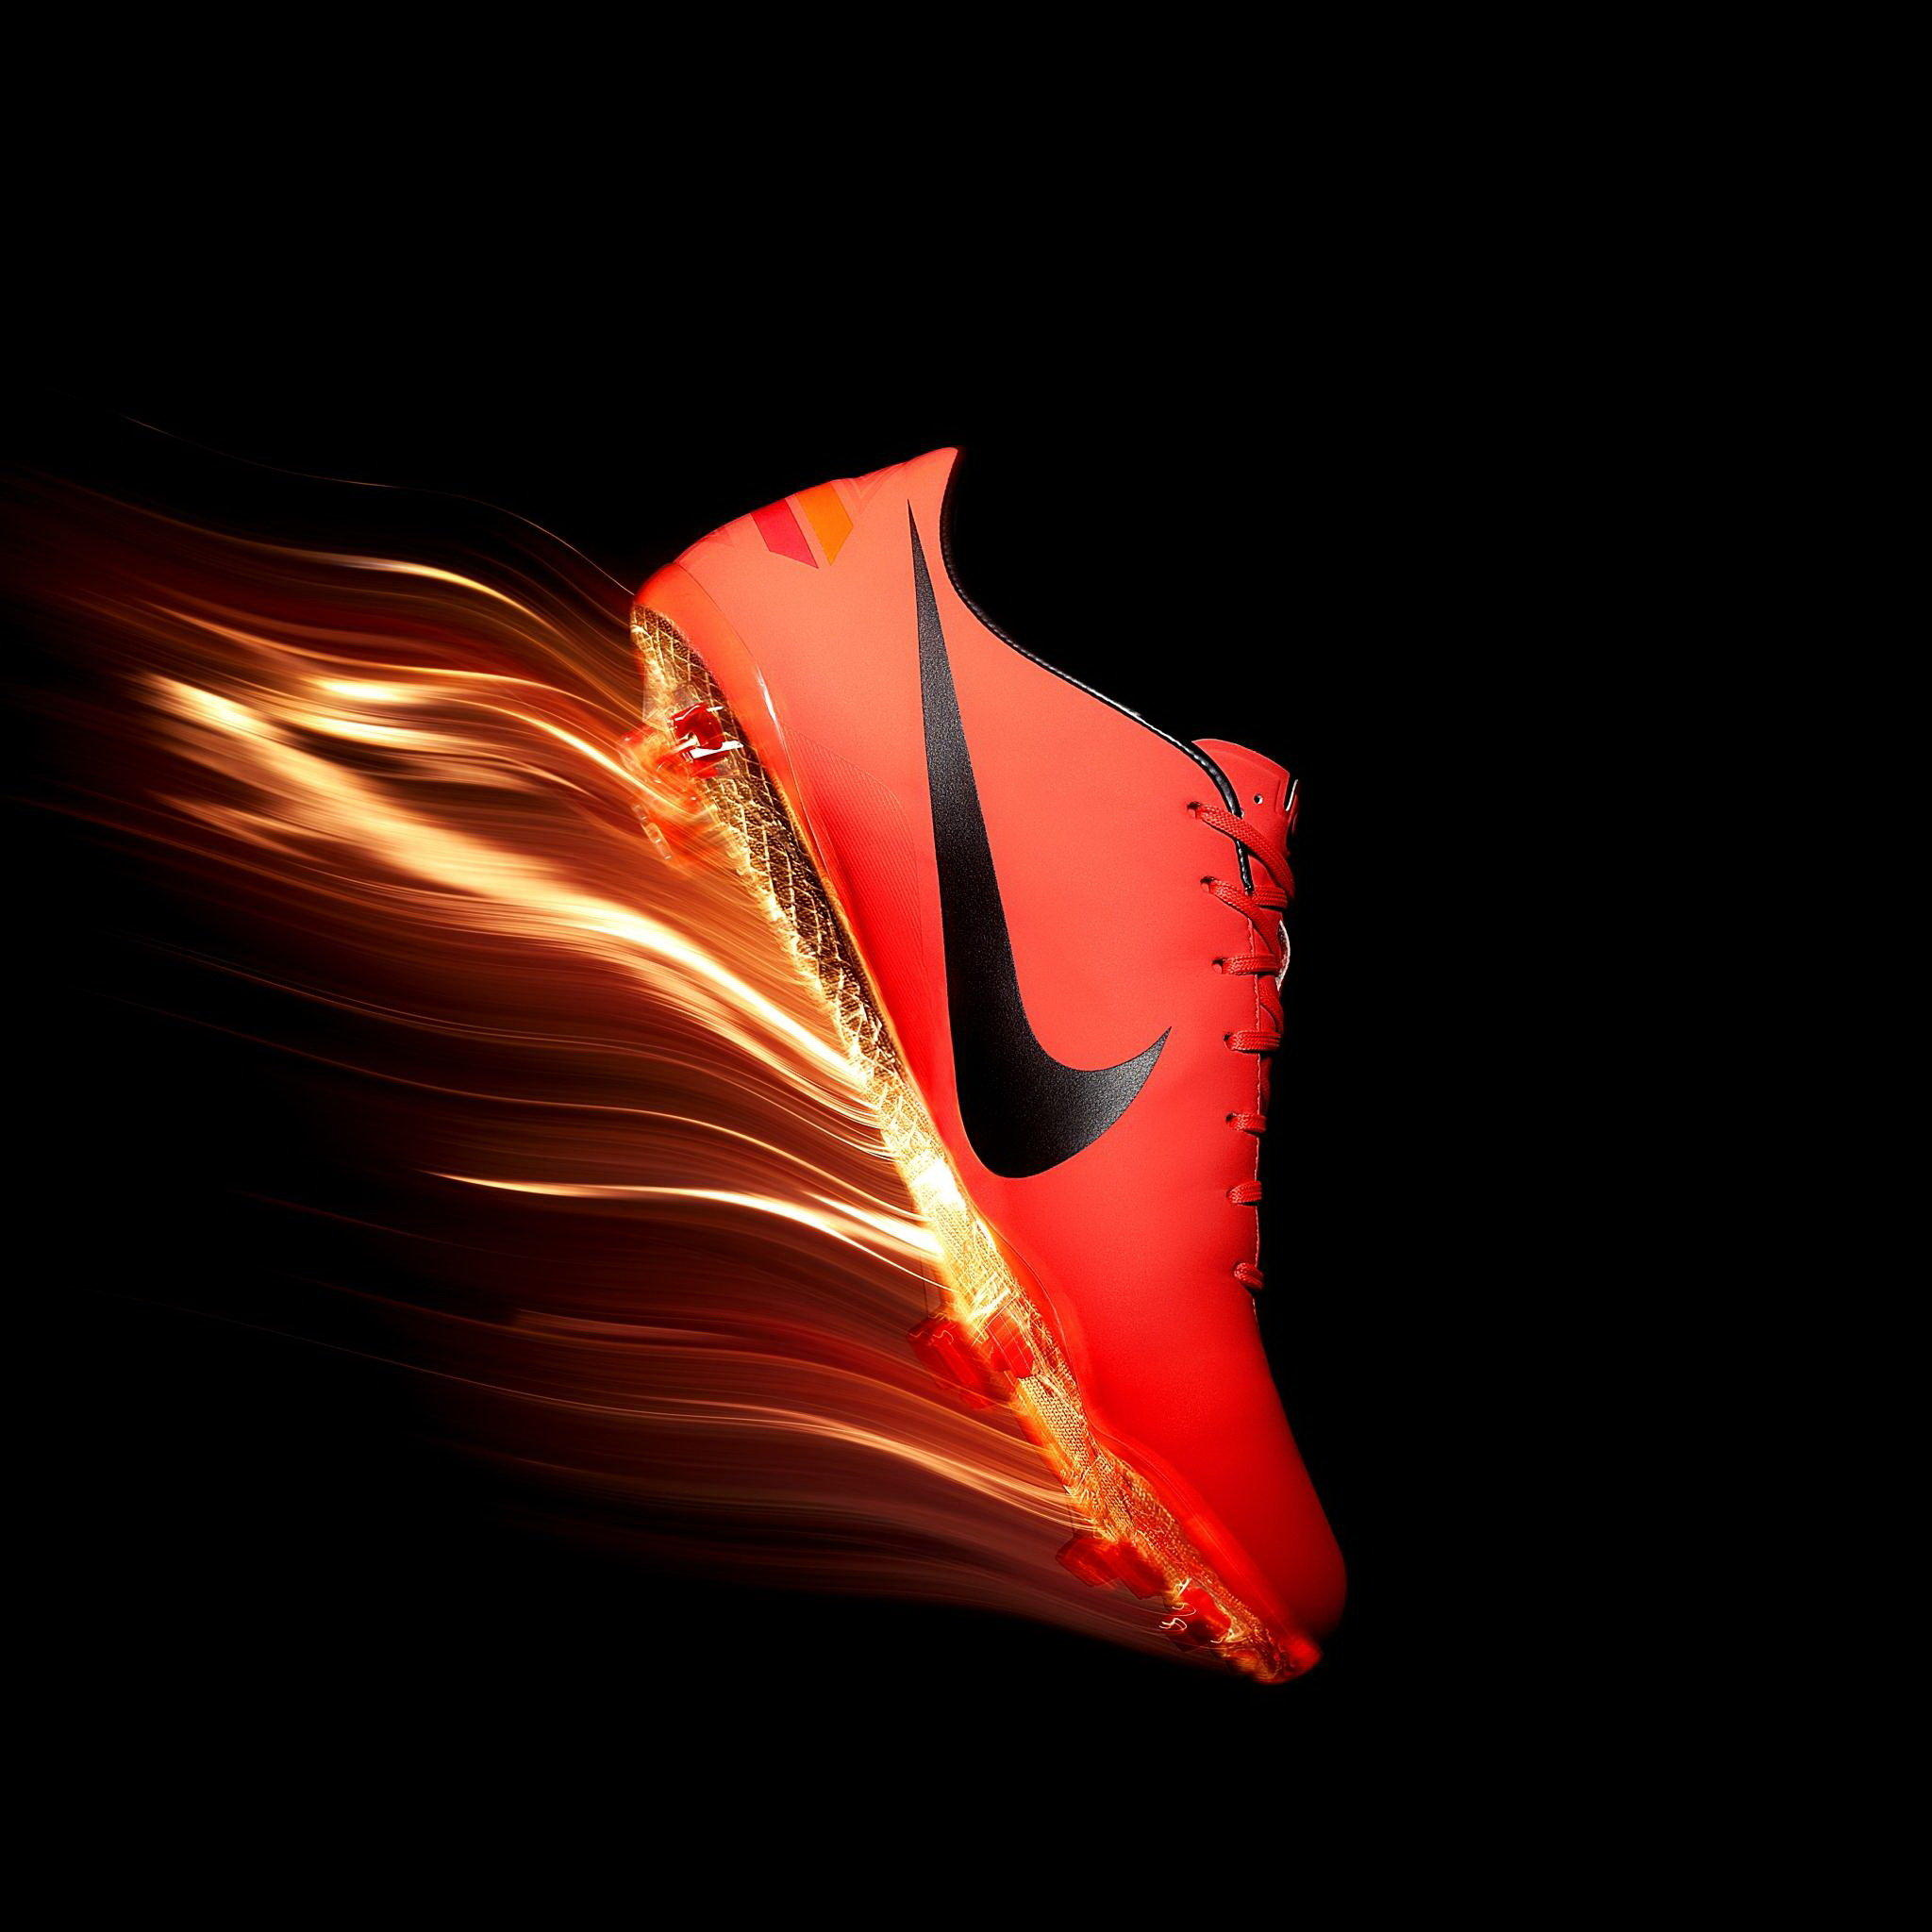 Cool Nike Wallpapers For Ipad Cool nike wall 2048x2048